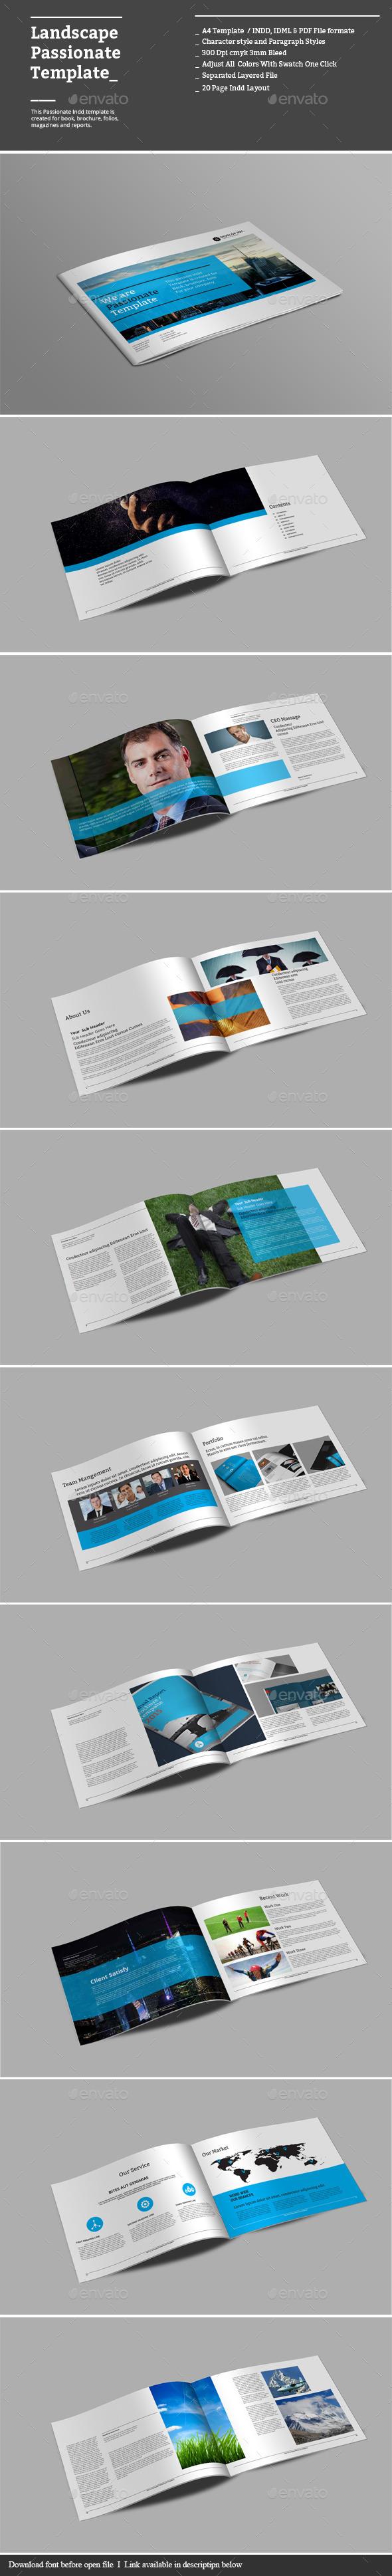 Landscape Passionate Templates - Corporate Brochures